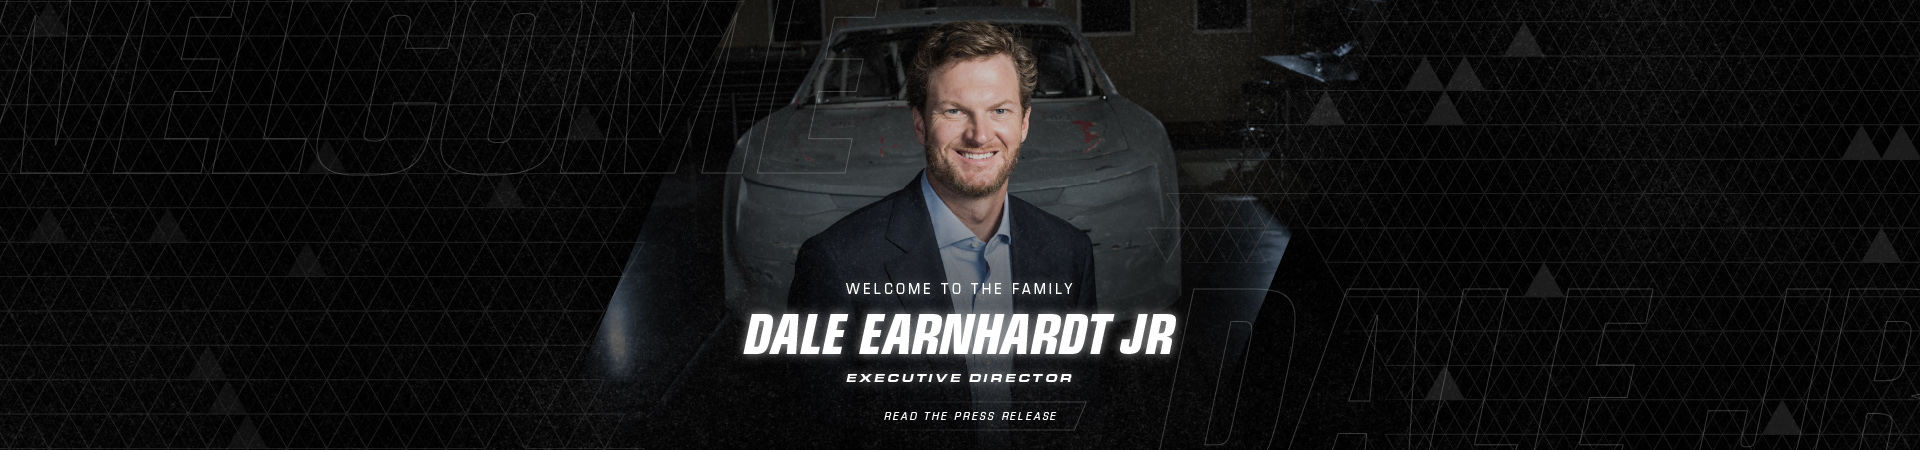 iRacing Welcomes Dale Earnhardt Jr. to the Team as Executive Director!